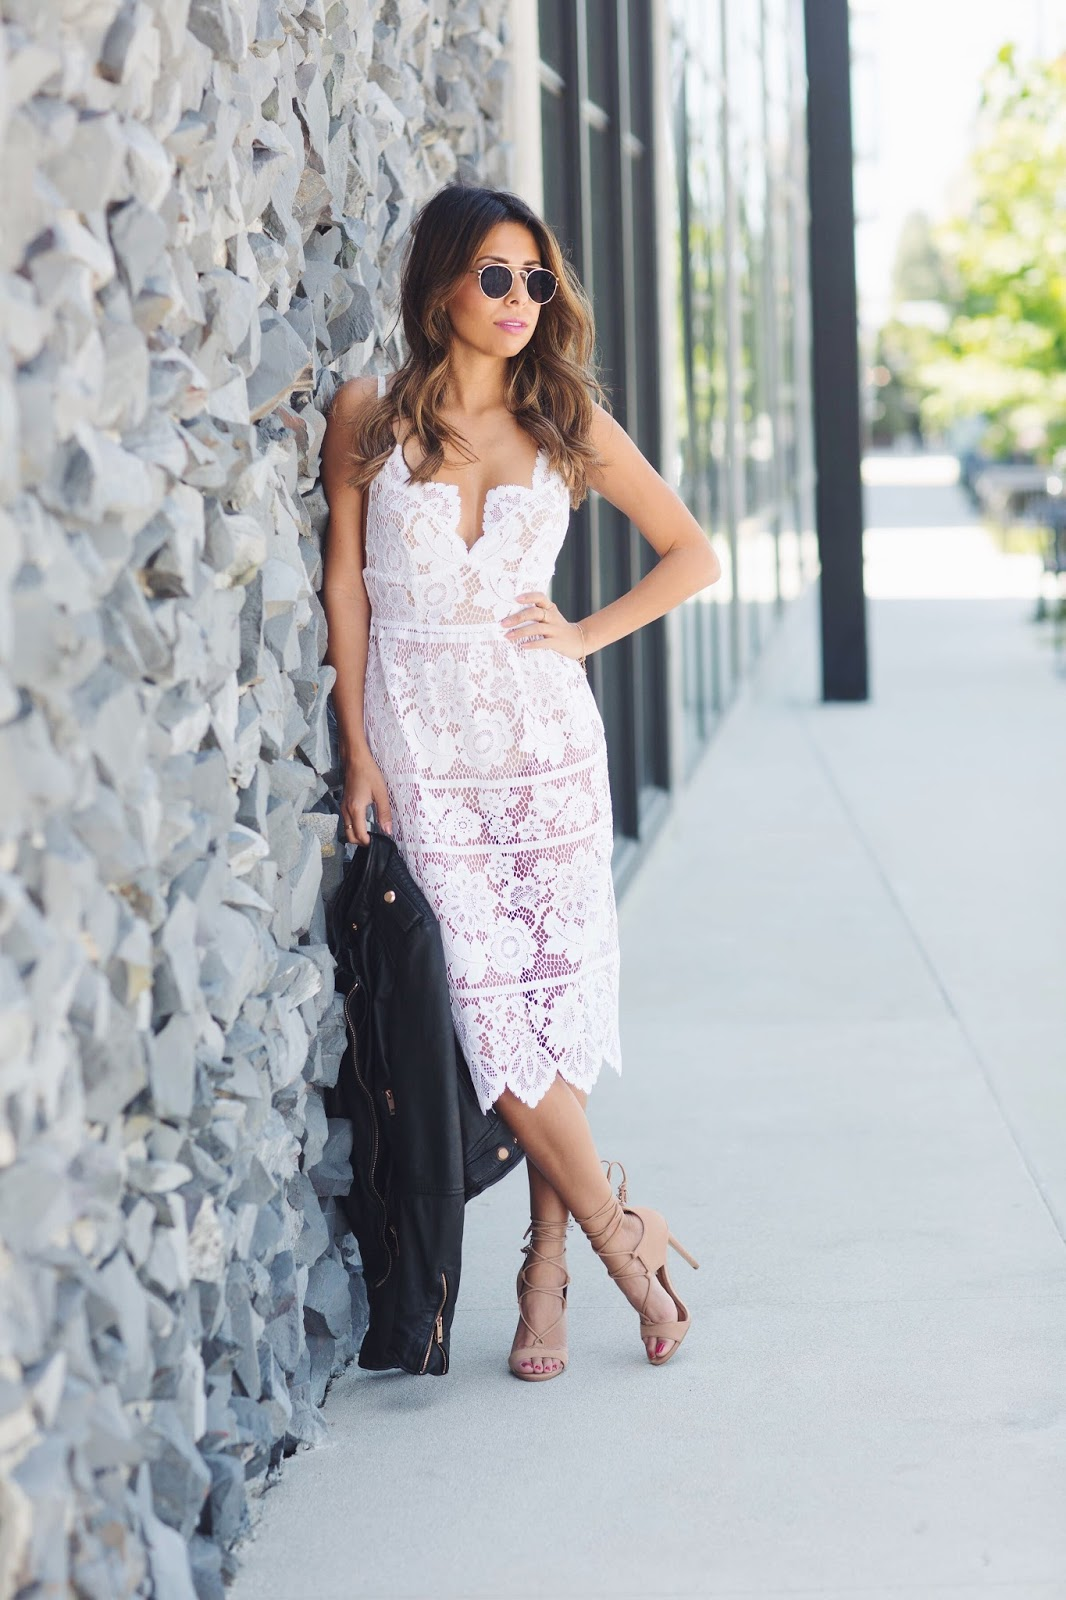 white lace dress, for love and lemons, lace with leather, pursuit of shoes